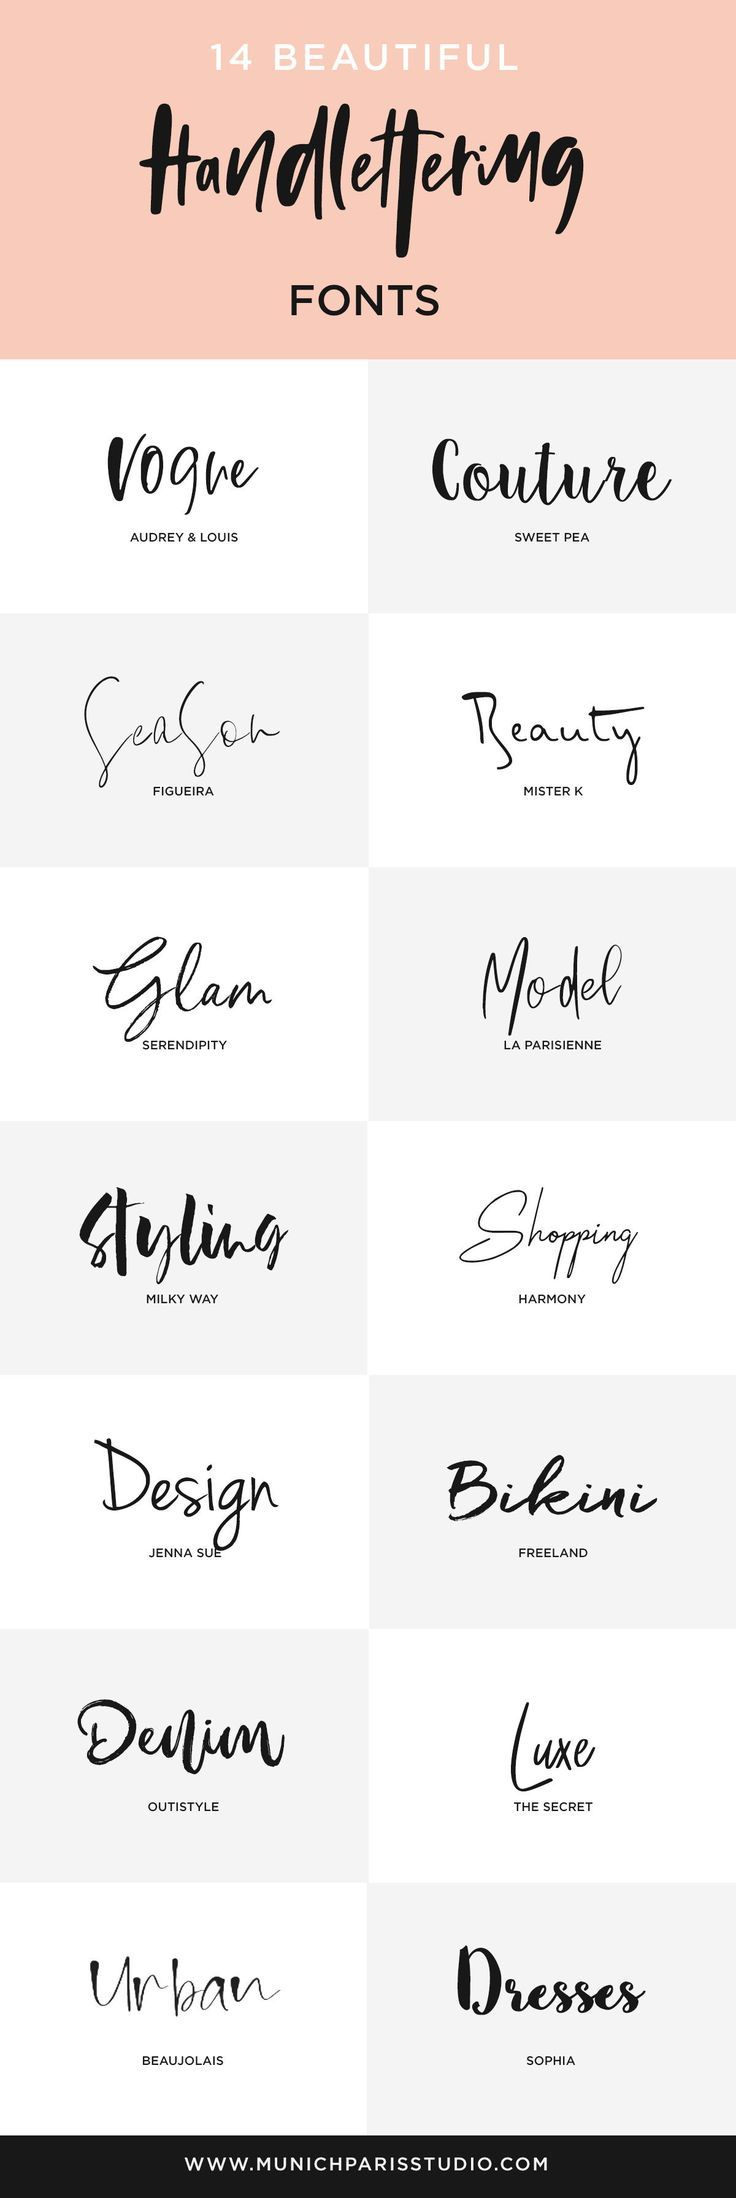 14 Beautiful Hand-Lettered Fonts for Logo & Branding